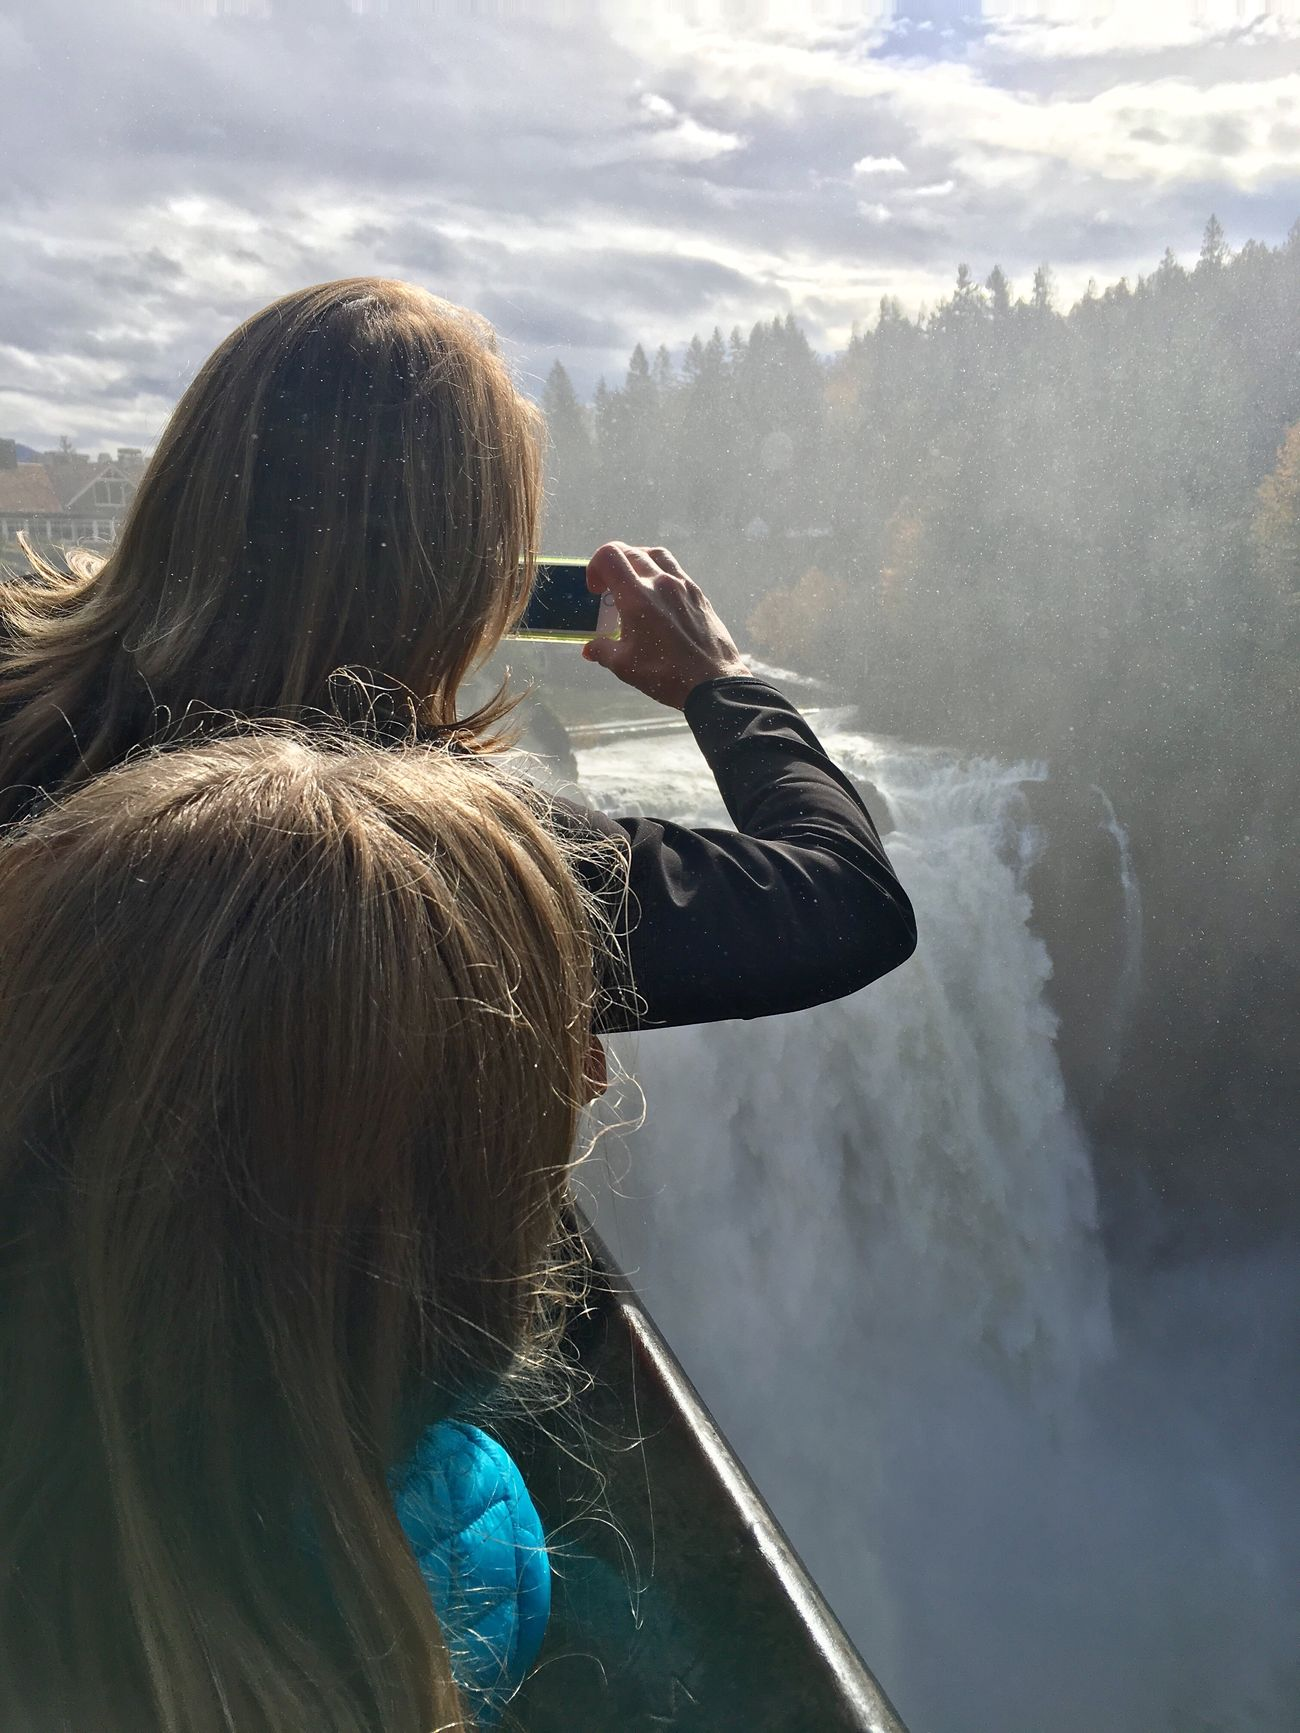 Water Outdoors Nature Seattle Gamble I Phone Waterfall Falls Snoqualmie Falls People Taking Photos People